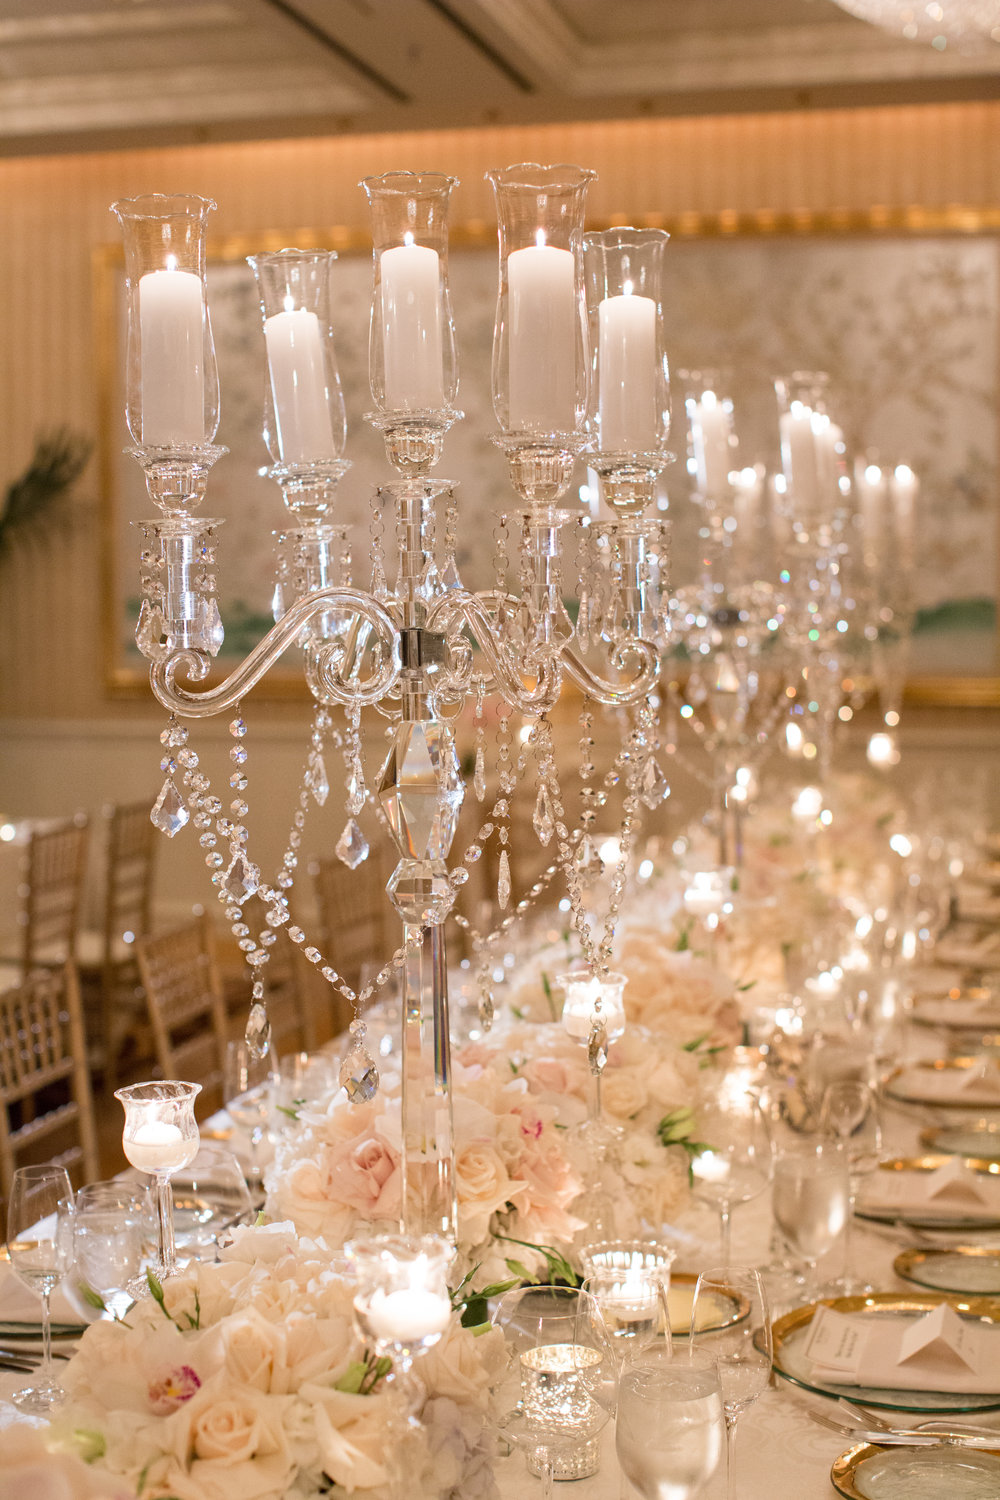 Peninsula Hotel Intimate Wedding, Beverly Hills